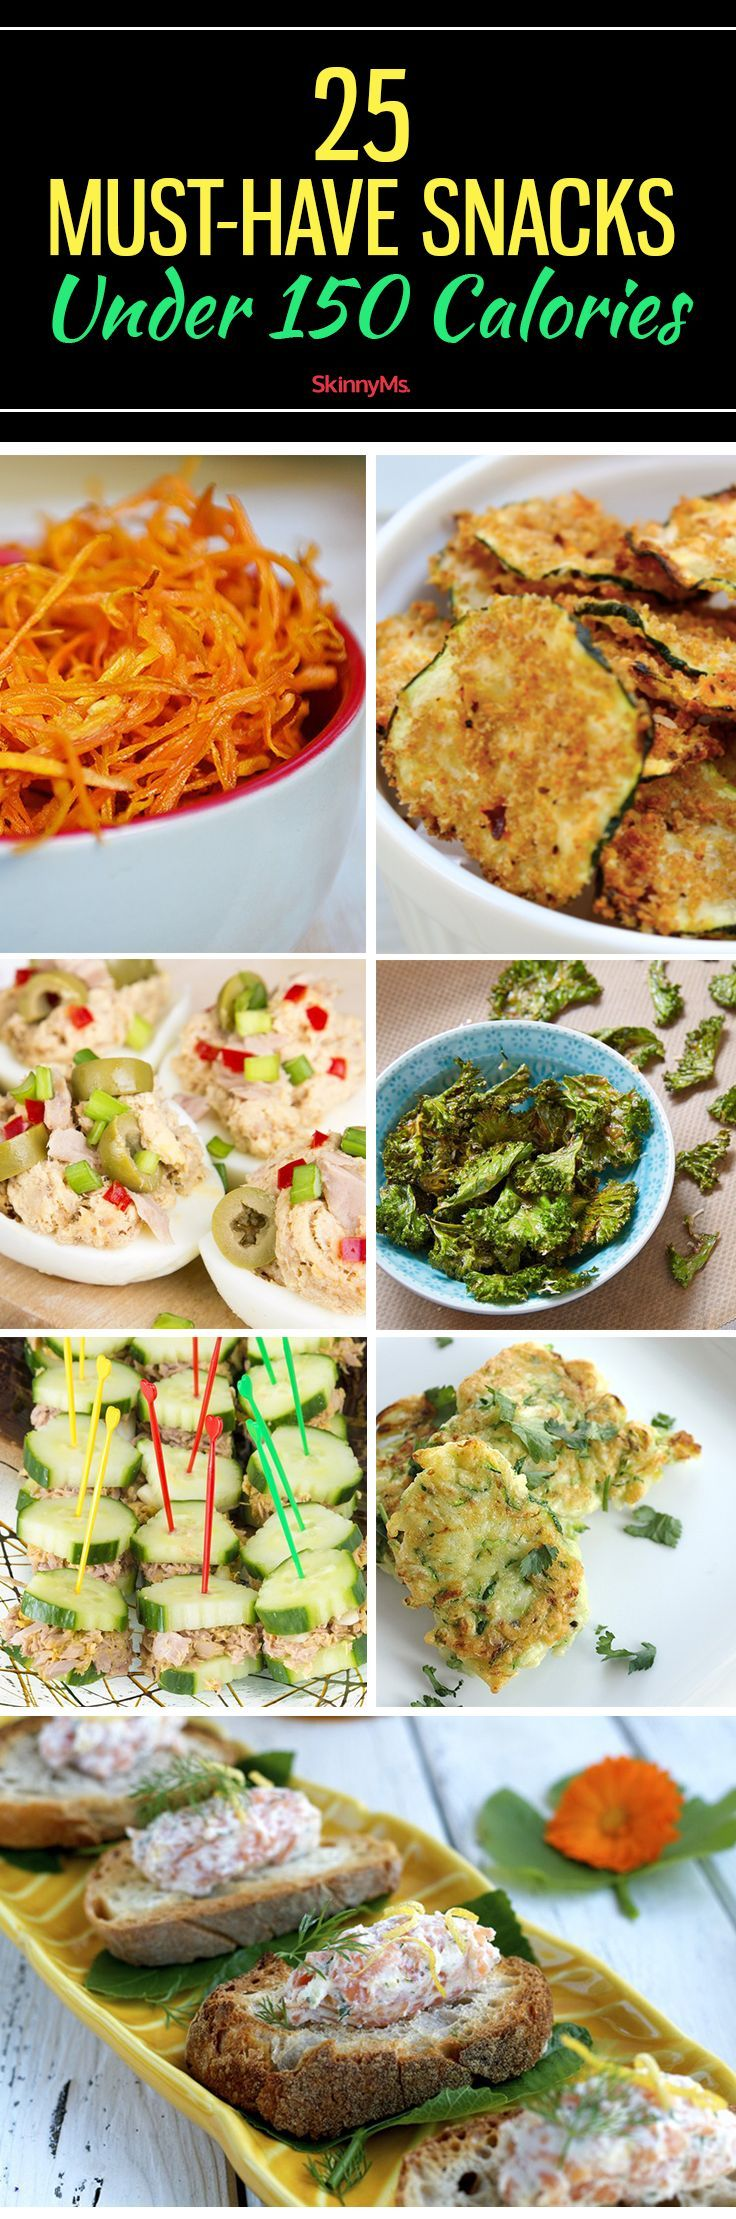 25 Must-Have Snacks Under 150 Calories